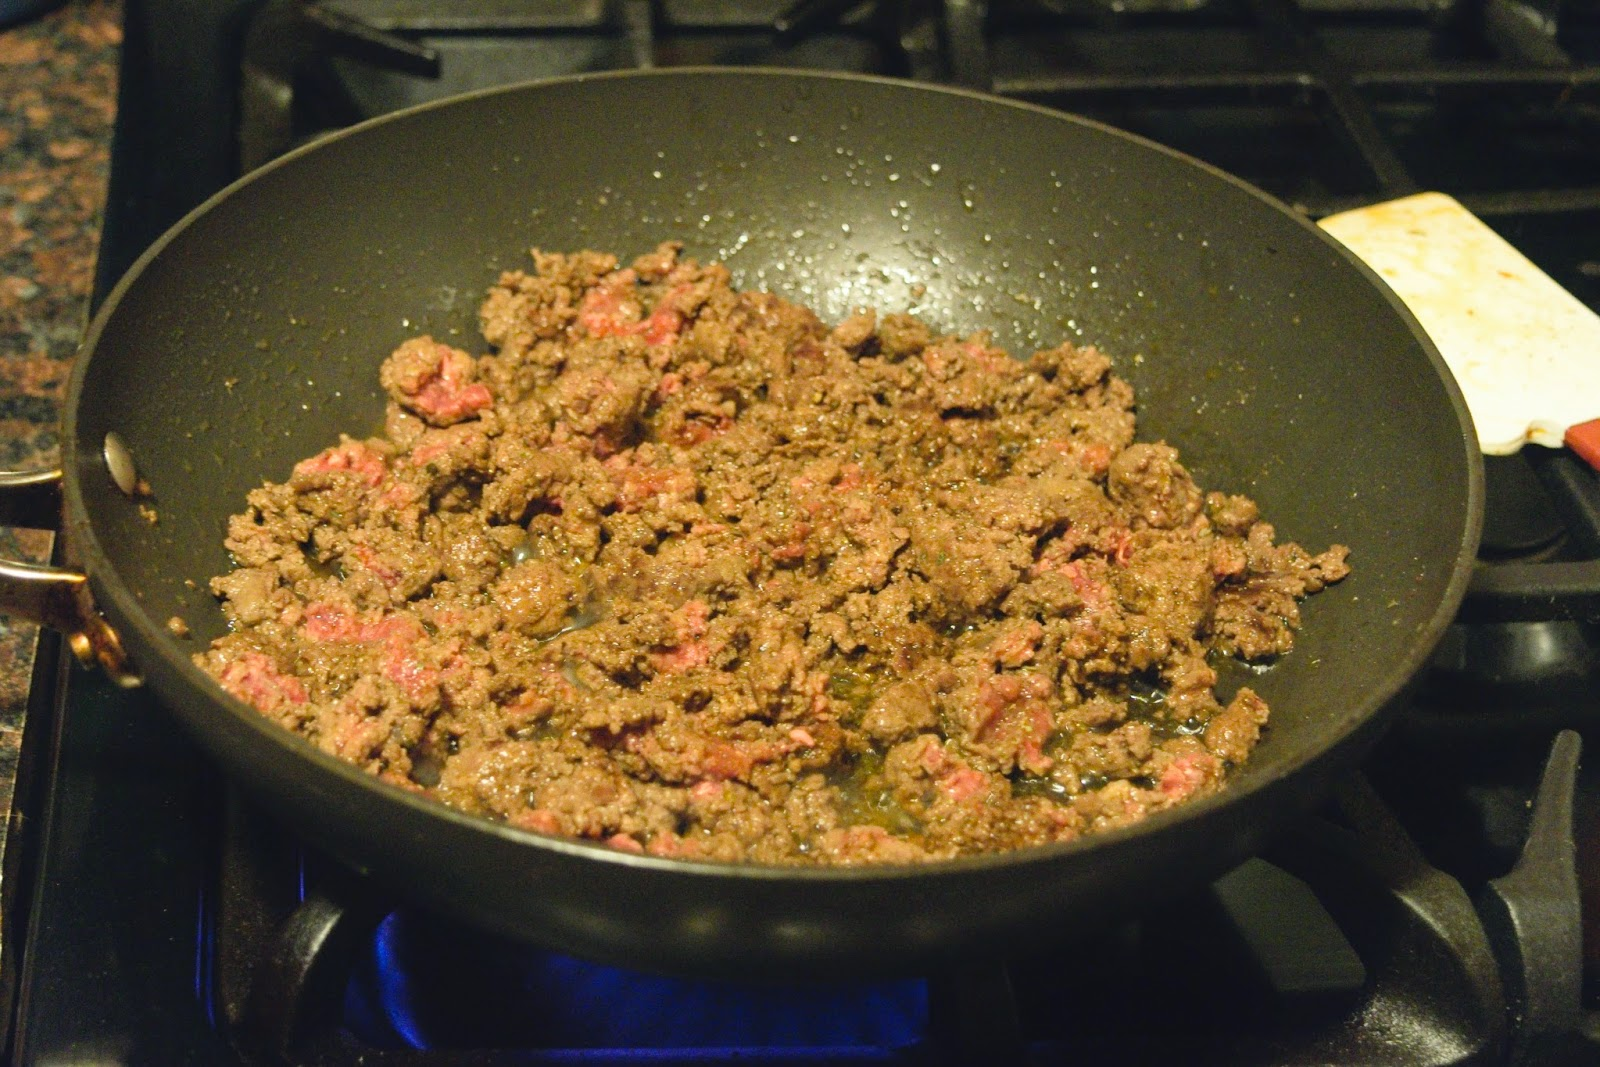 The ground beef browning in the pan.